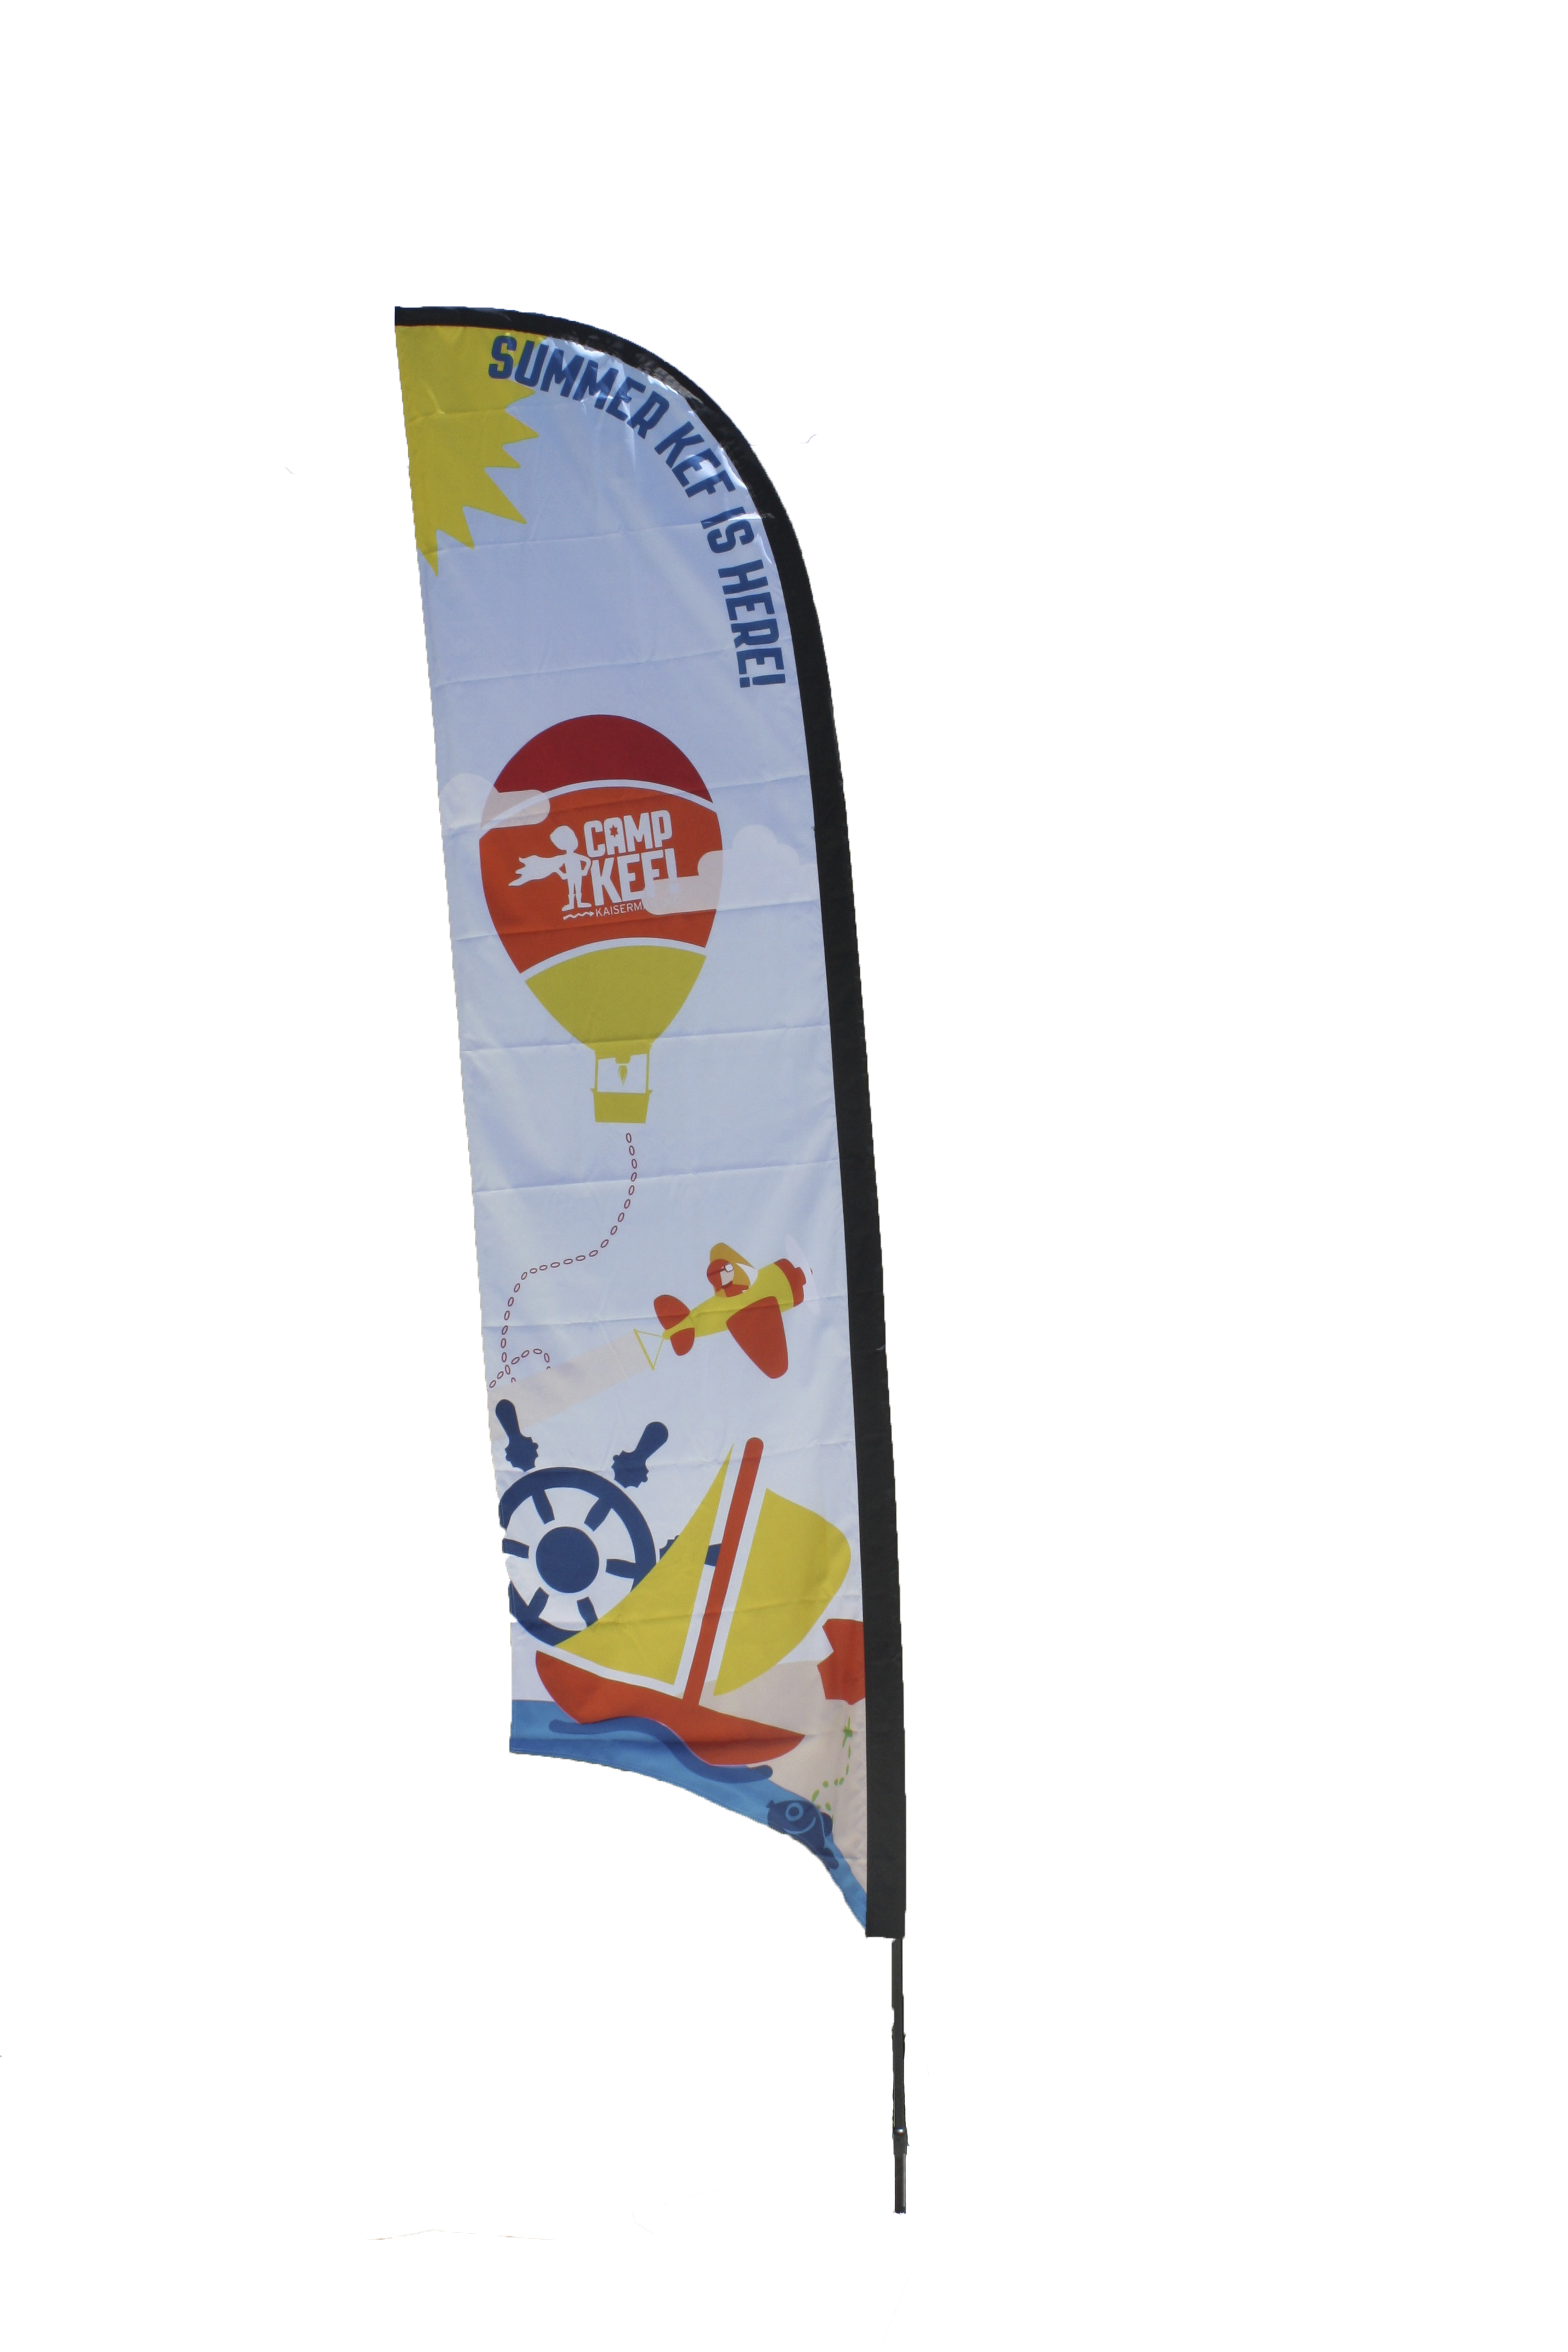 Advertising and Promotional Flags, any size and style, such as balloons, blimps, outdoor inflatables, advertising replicas, outdoor advertising balloons, air dancers and inflatable costumes. Wind Flags Supply Los Angeles, Wind Banner Sales, Buy Wind Feathers, Promotional Inflatables Provider.